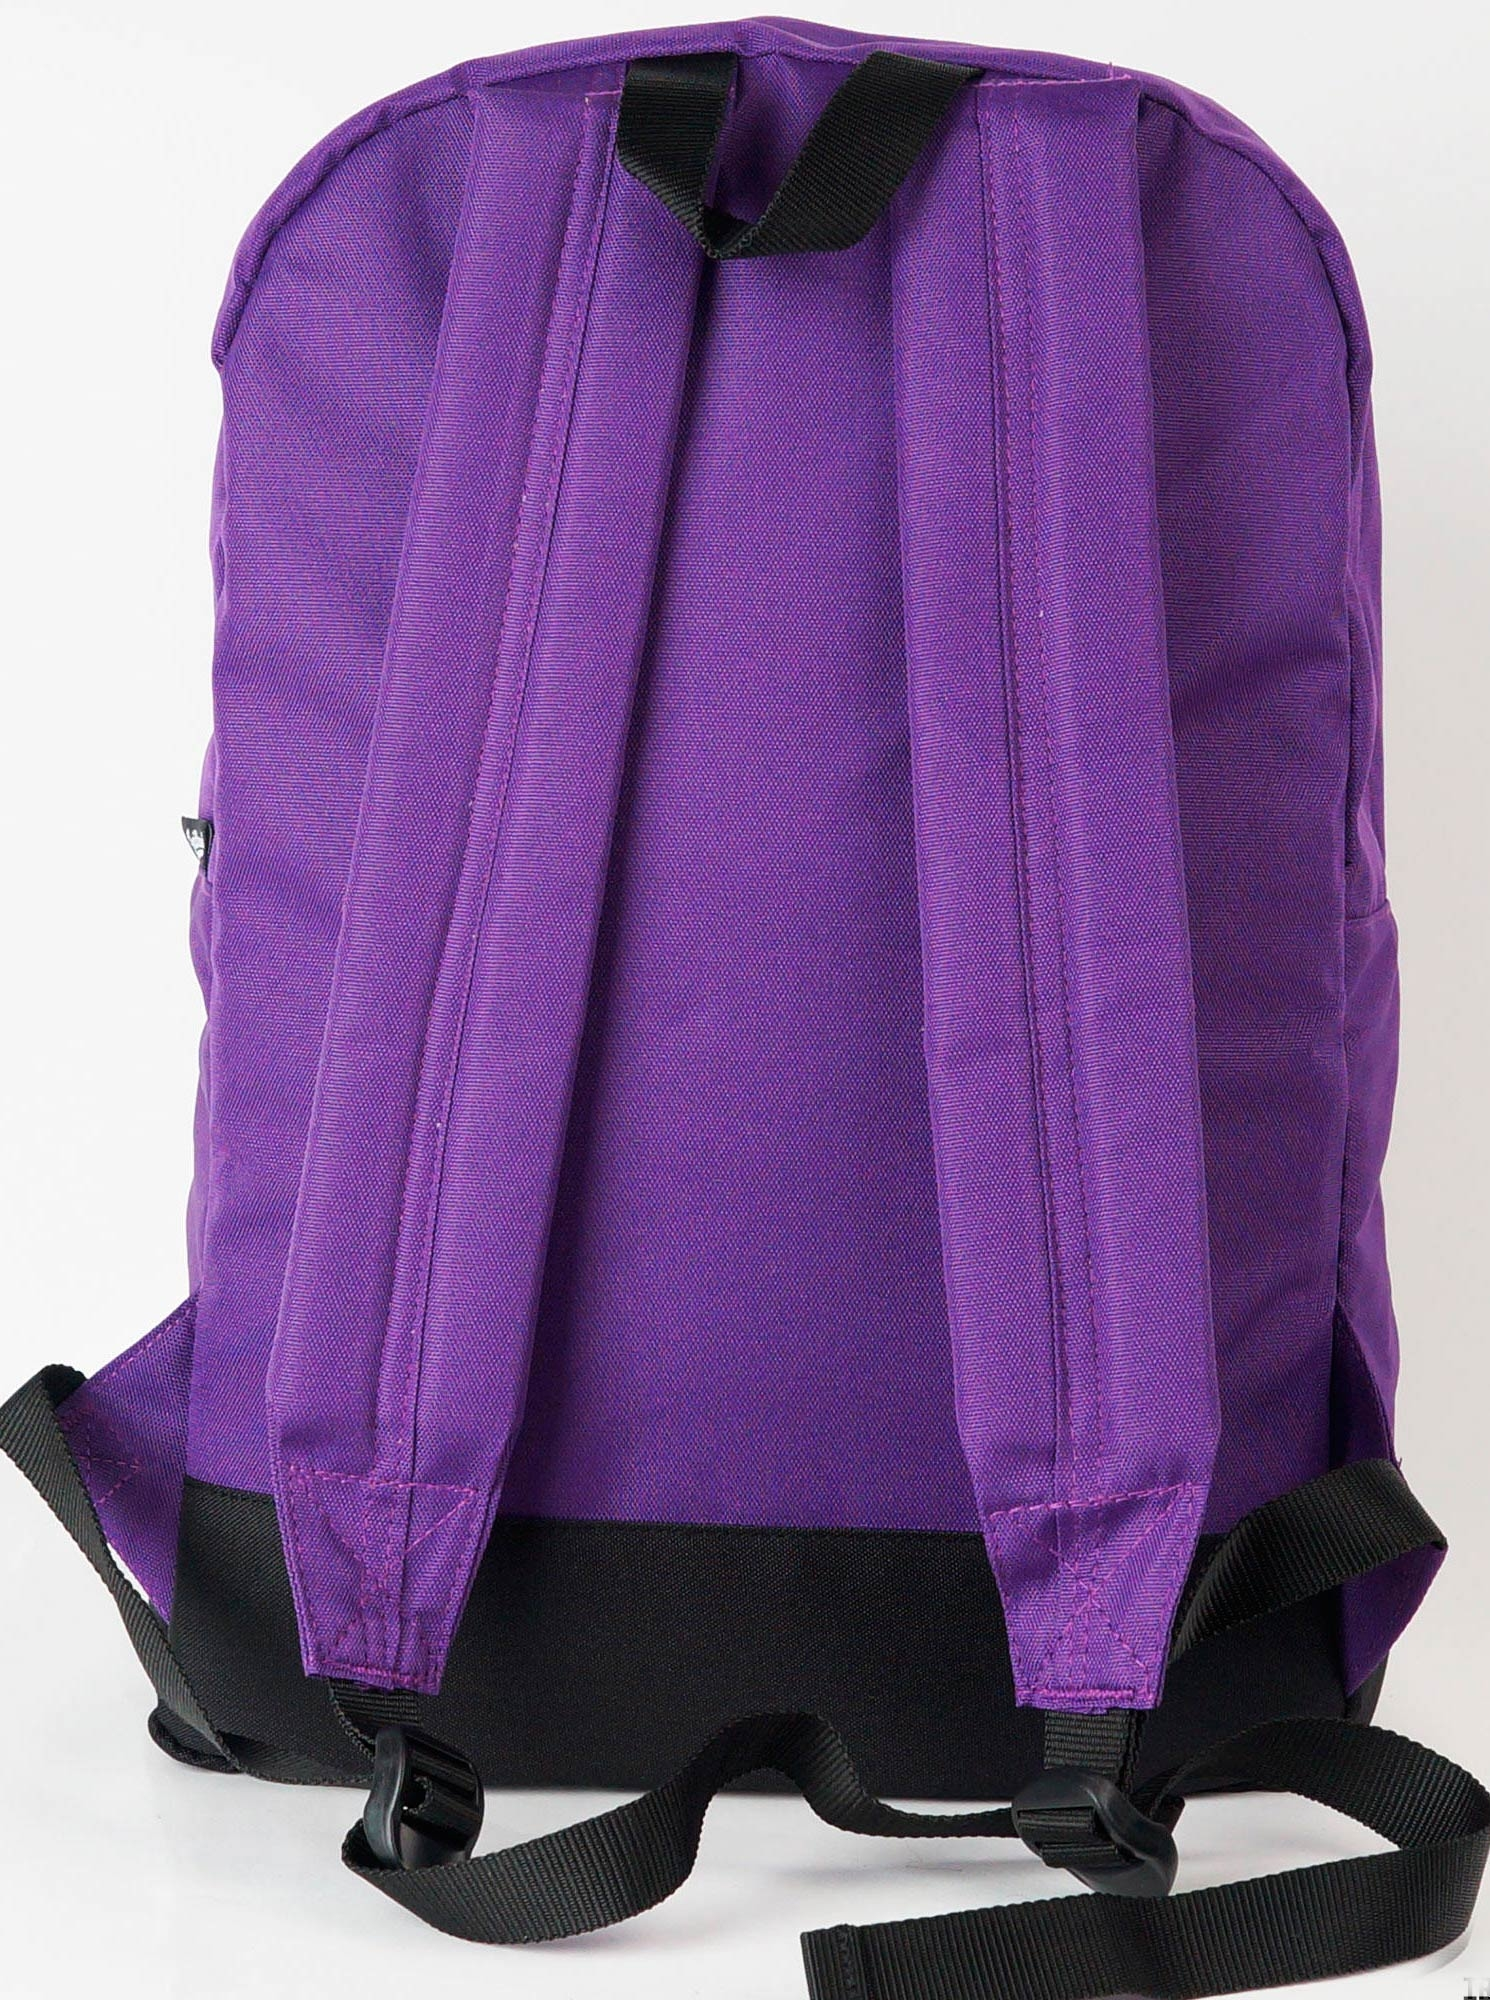 Рюкзак Traihead BAG0011-17 Фиолетовый, BAG0011-17_PLUM, фото 3